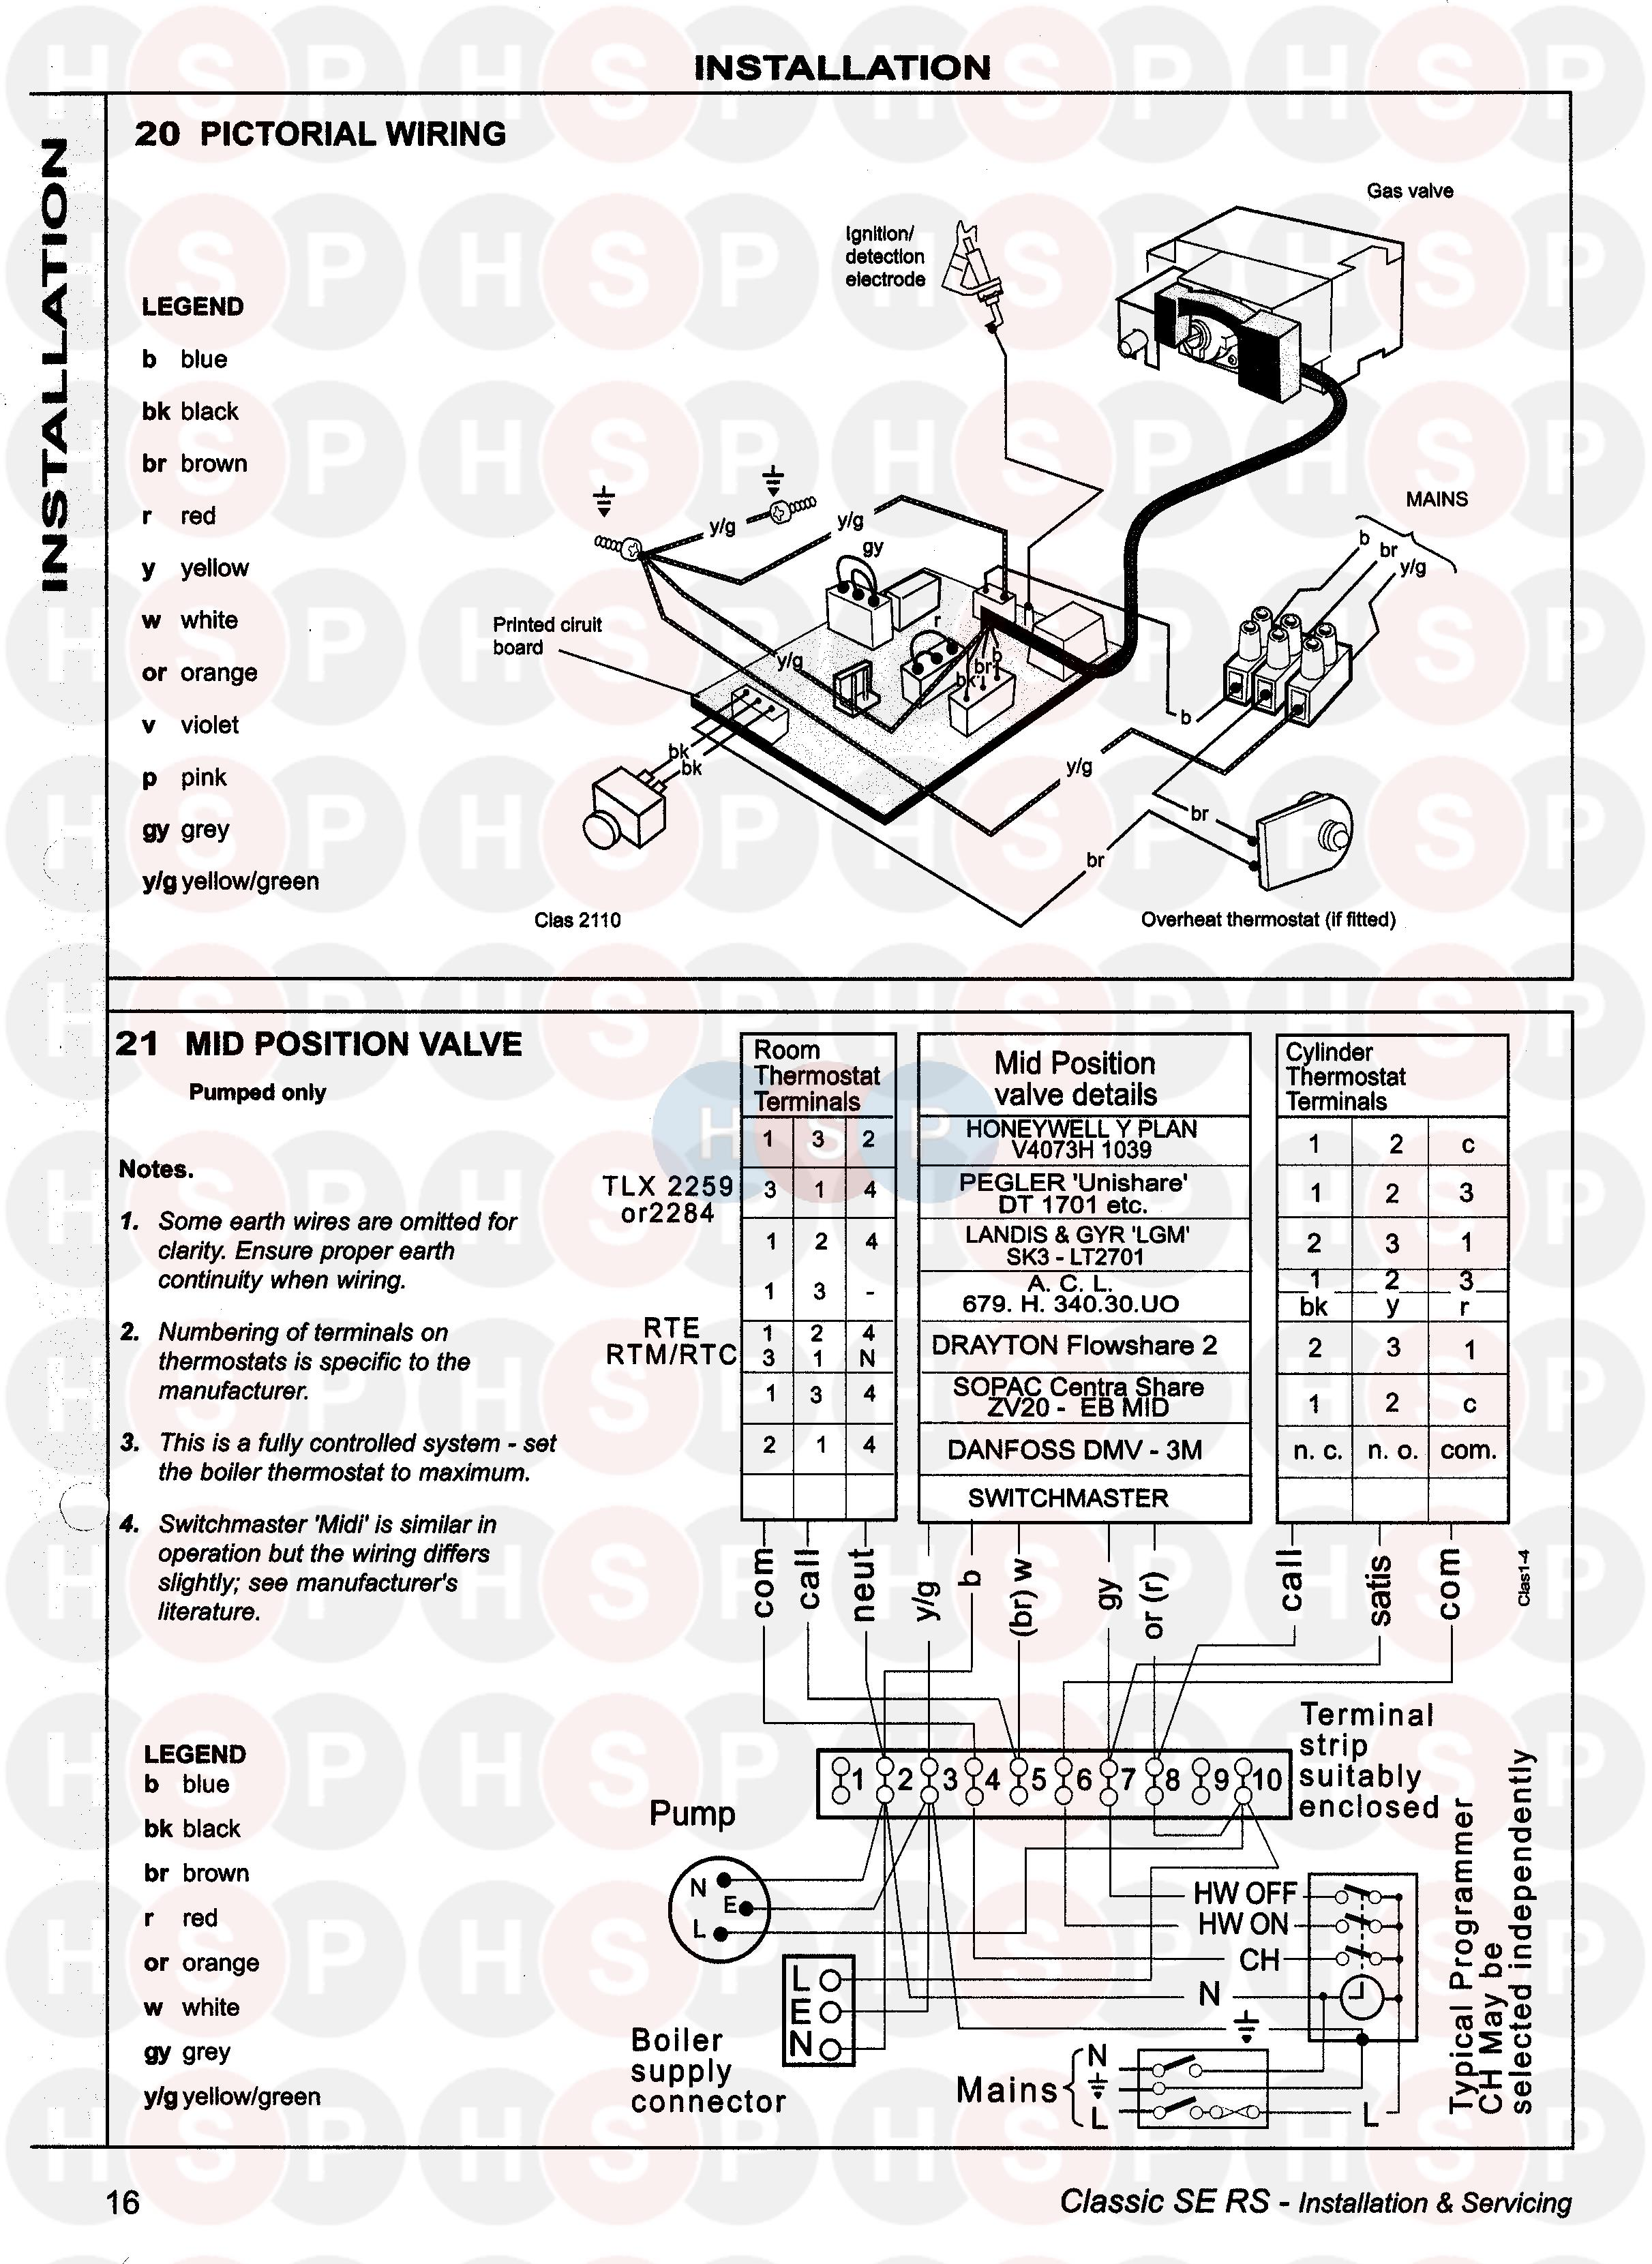 Ideal Classic Se15 Rs Wiring Diagram Heating Spare Parts Pictorial Click The To Open It On A New Page